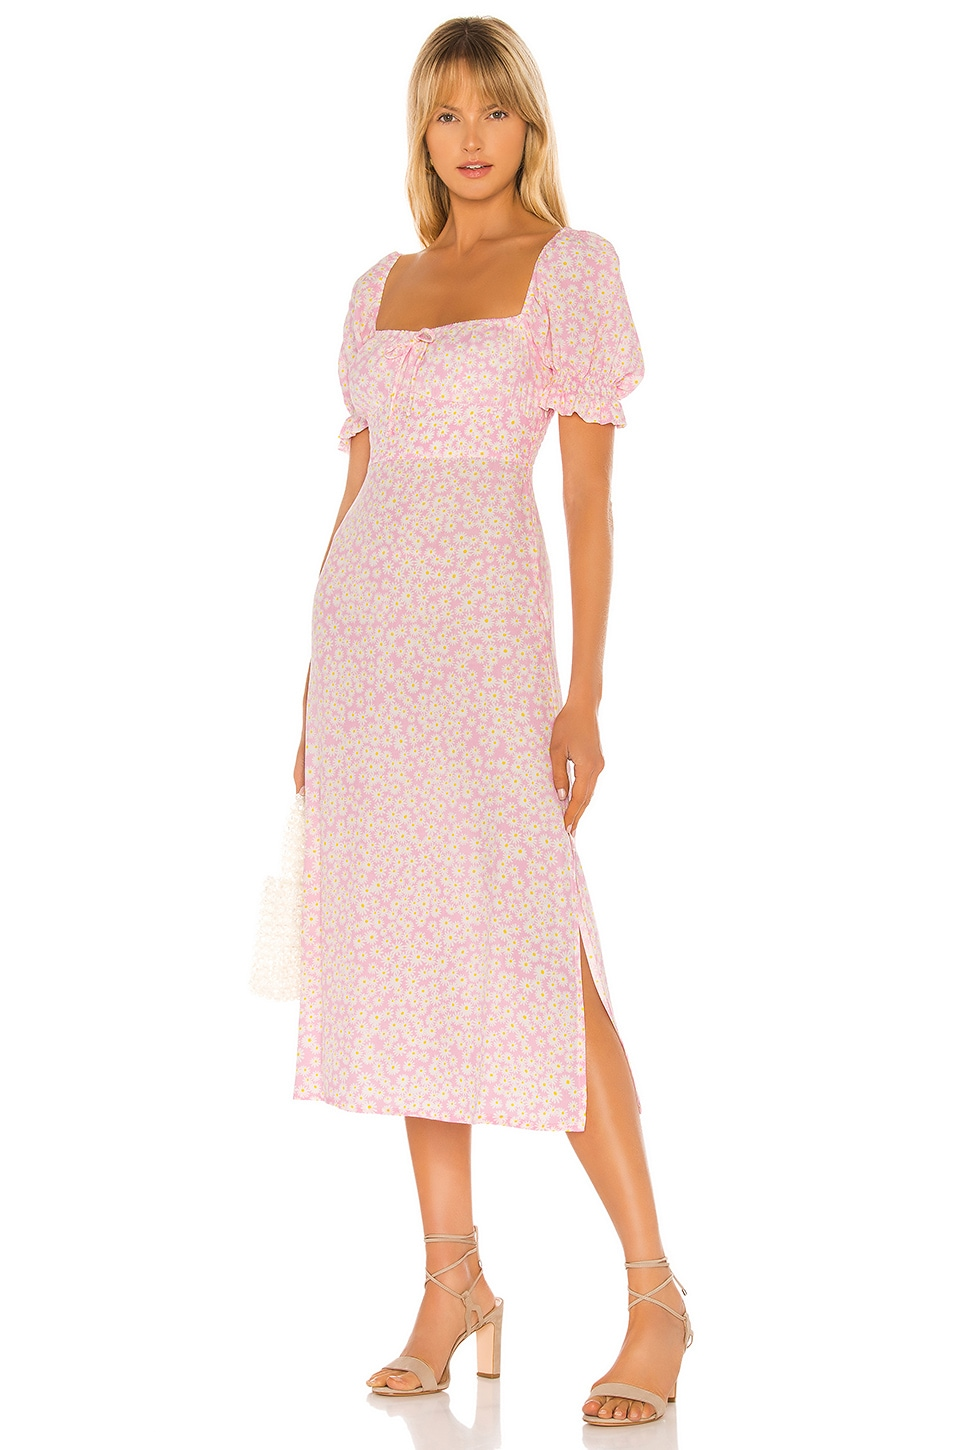 FAITHFULL THE BRAND Evelyn Midi Dress in Dusty Floral Pink